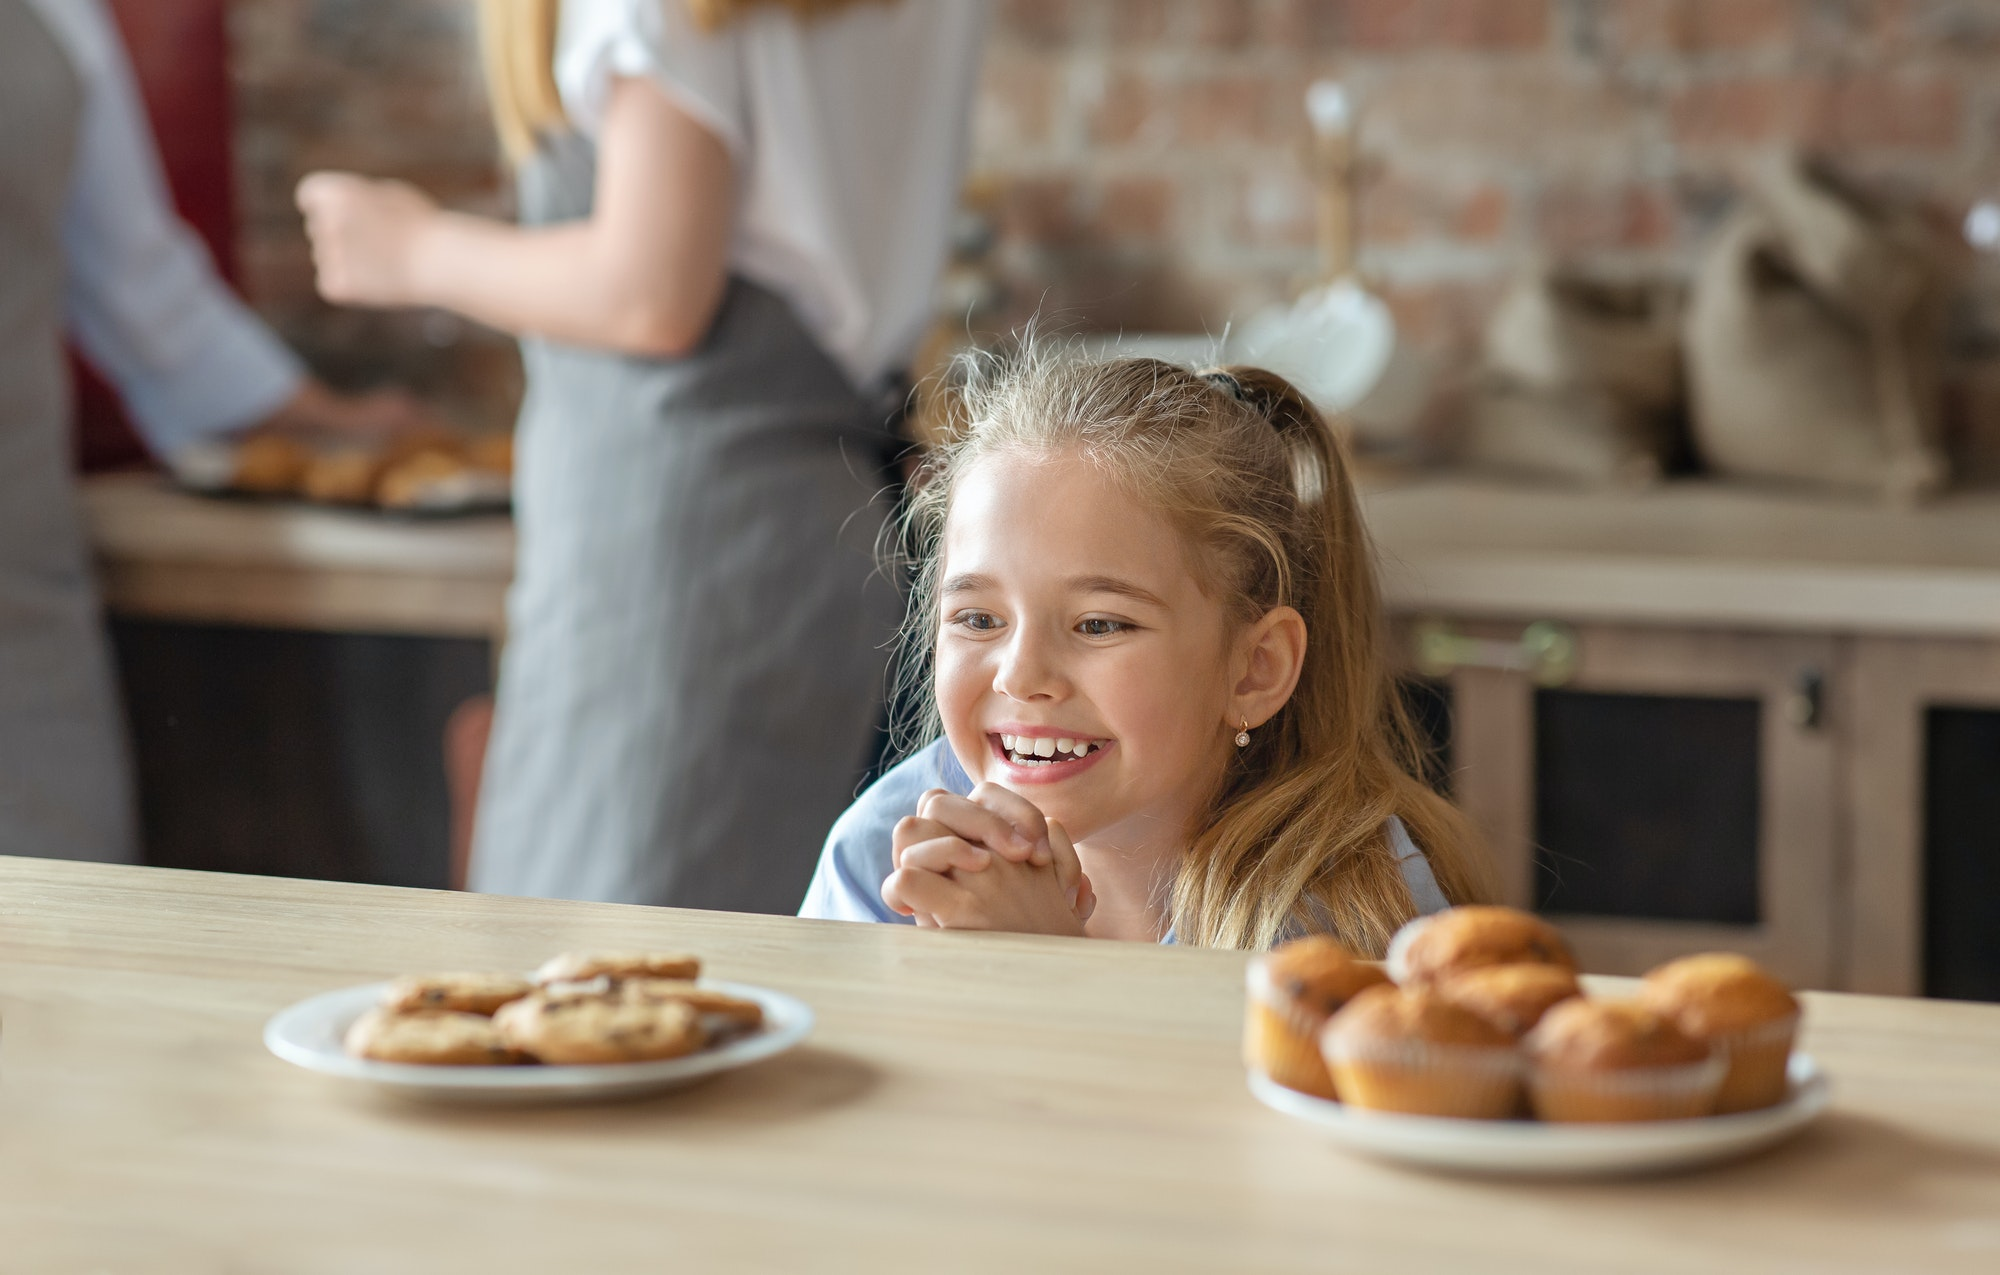 Adorable little girl looking with desire at treats on a table